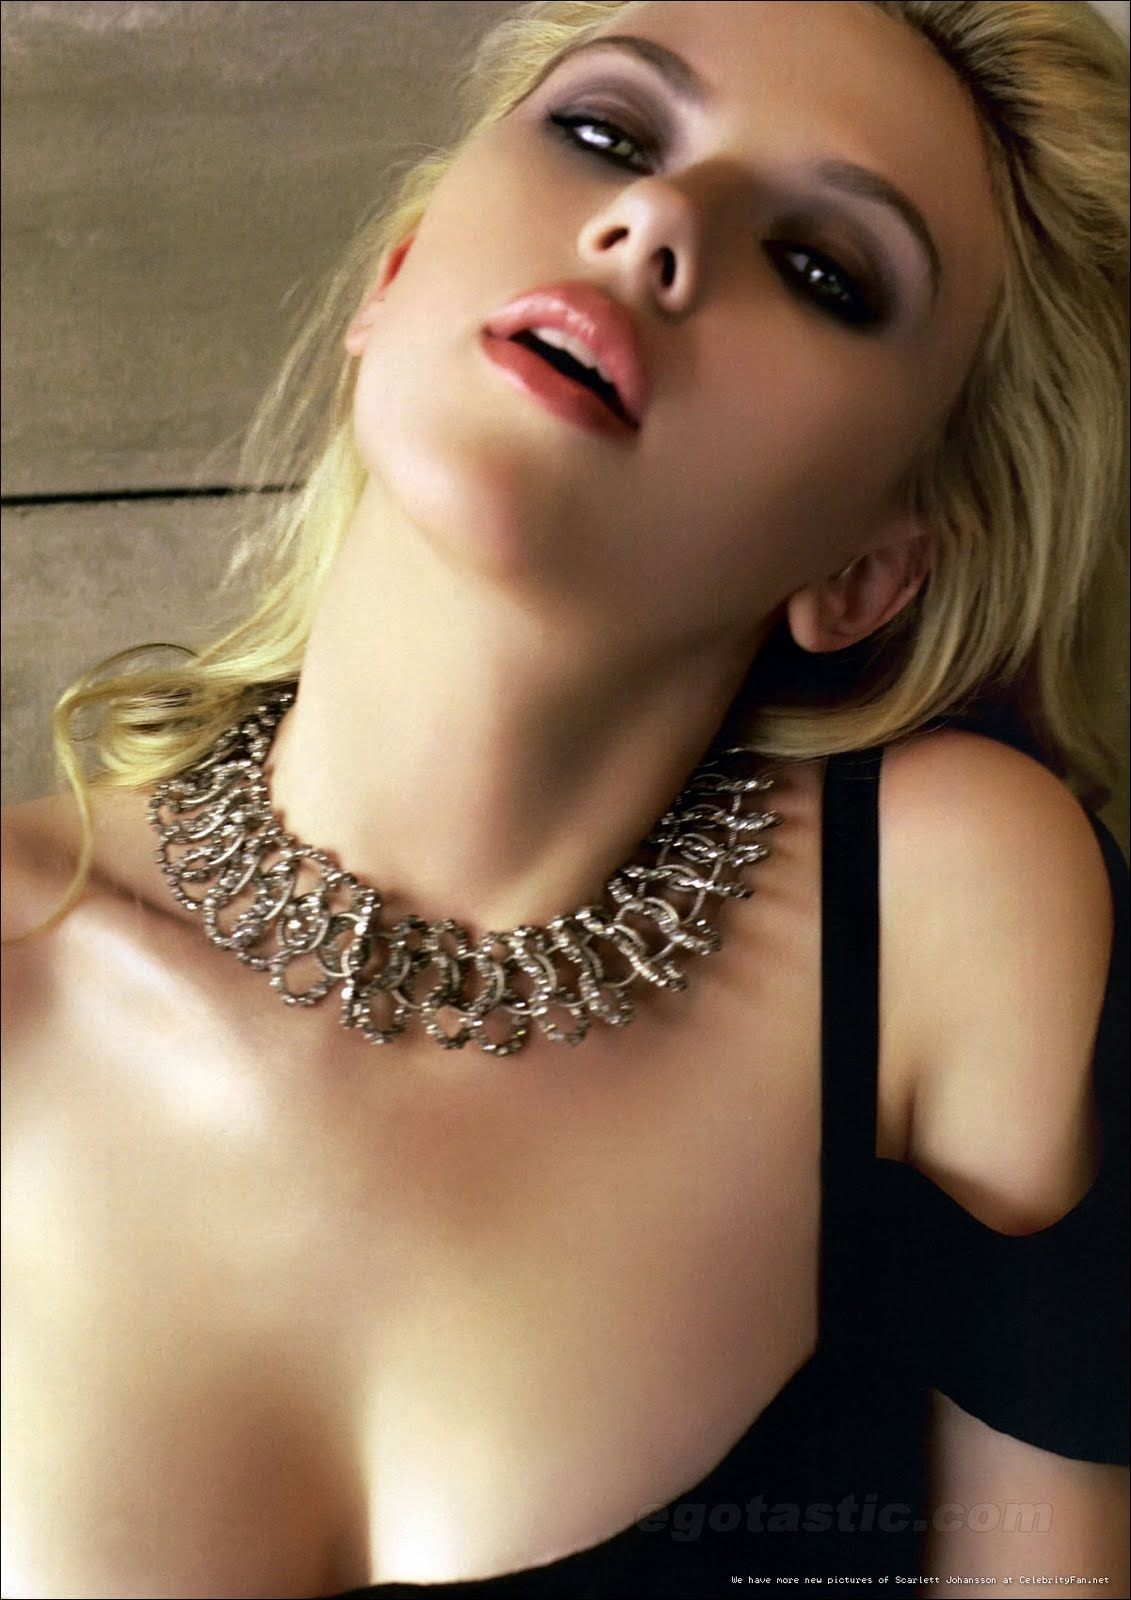 scarlett johansson model - photo #45